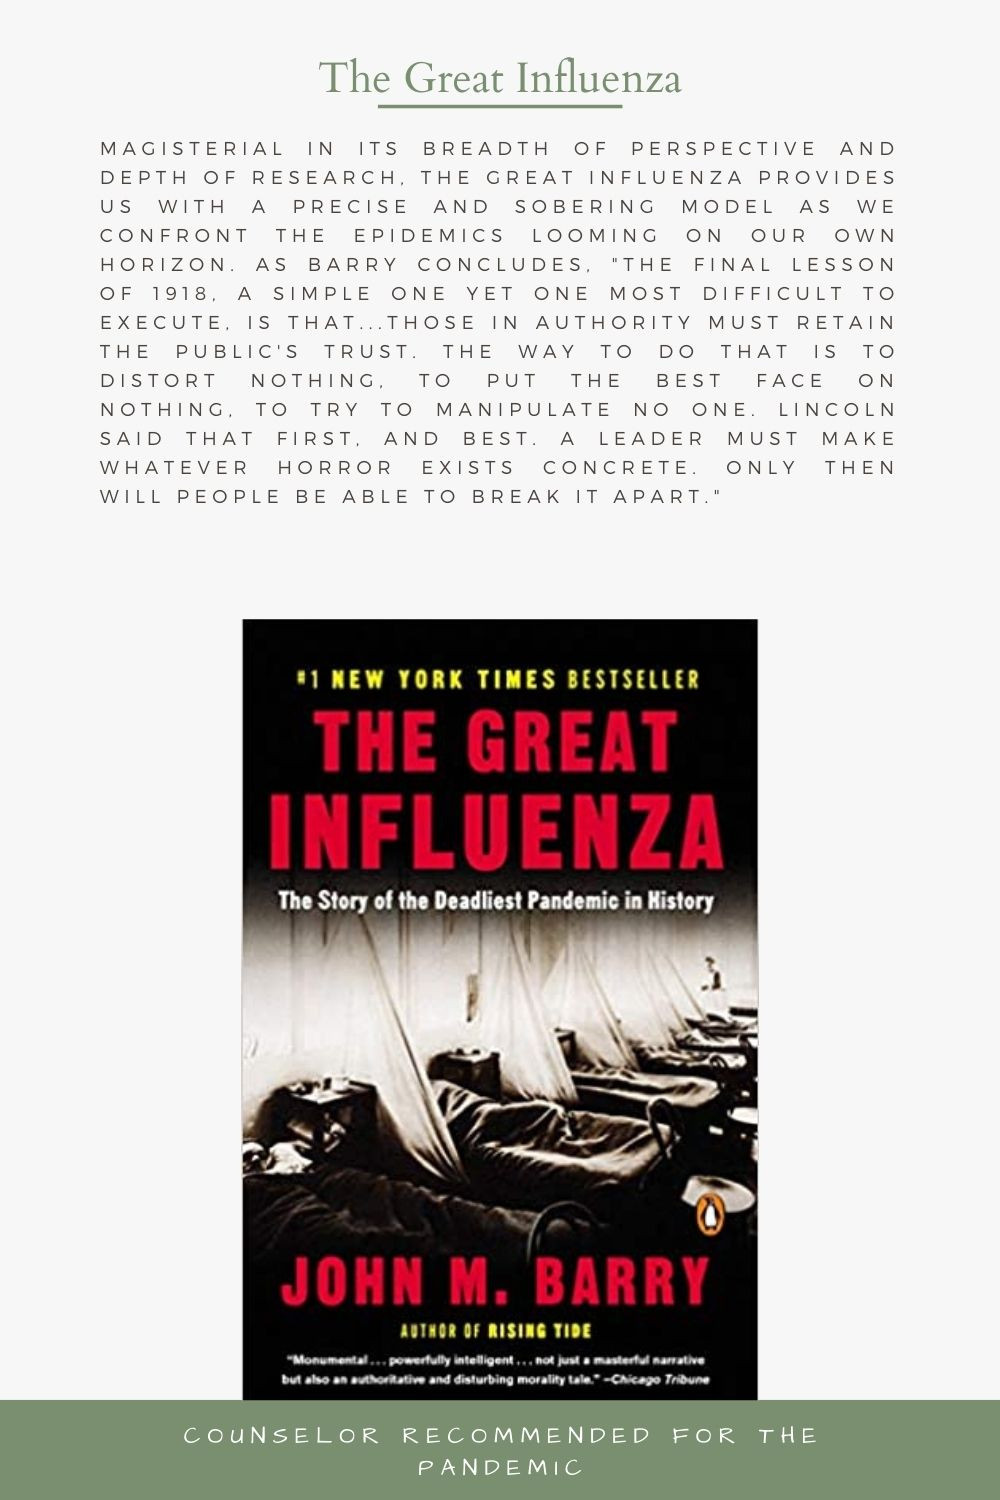 The Story of the Deadliest Pandemic in History